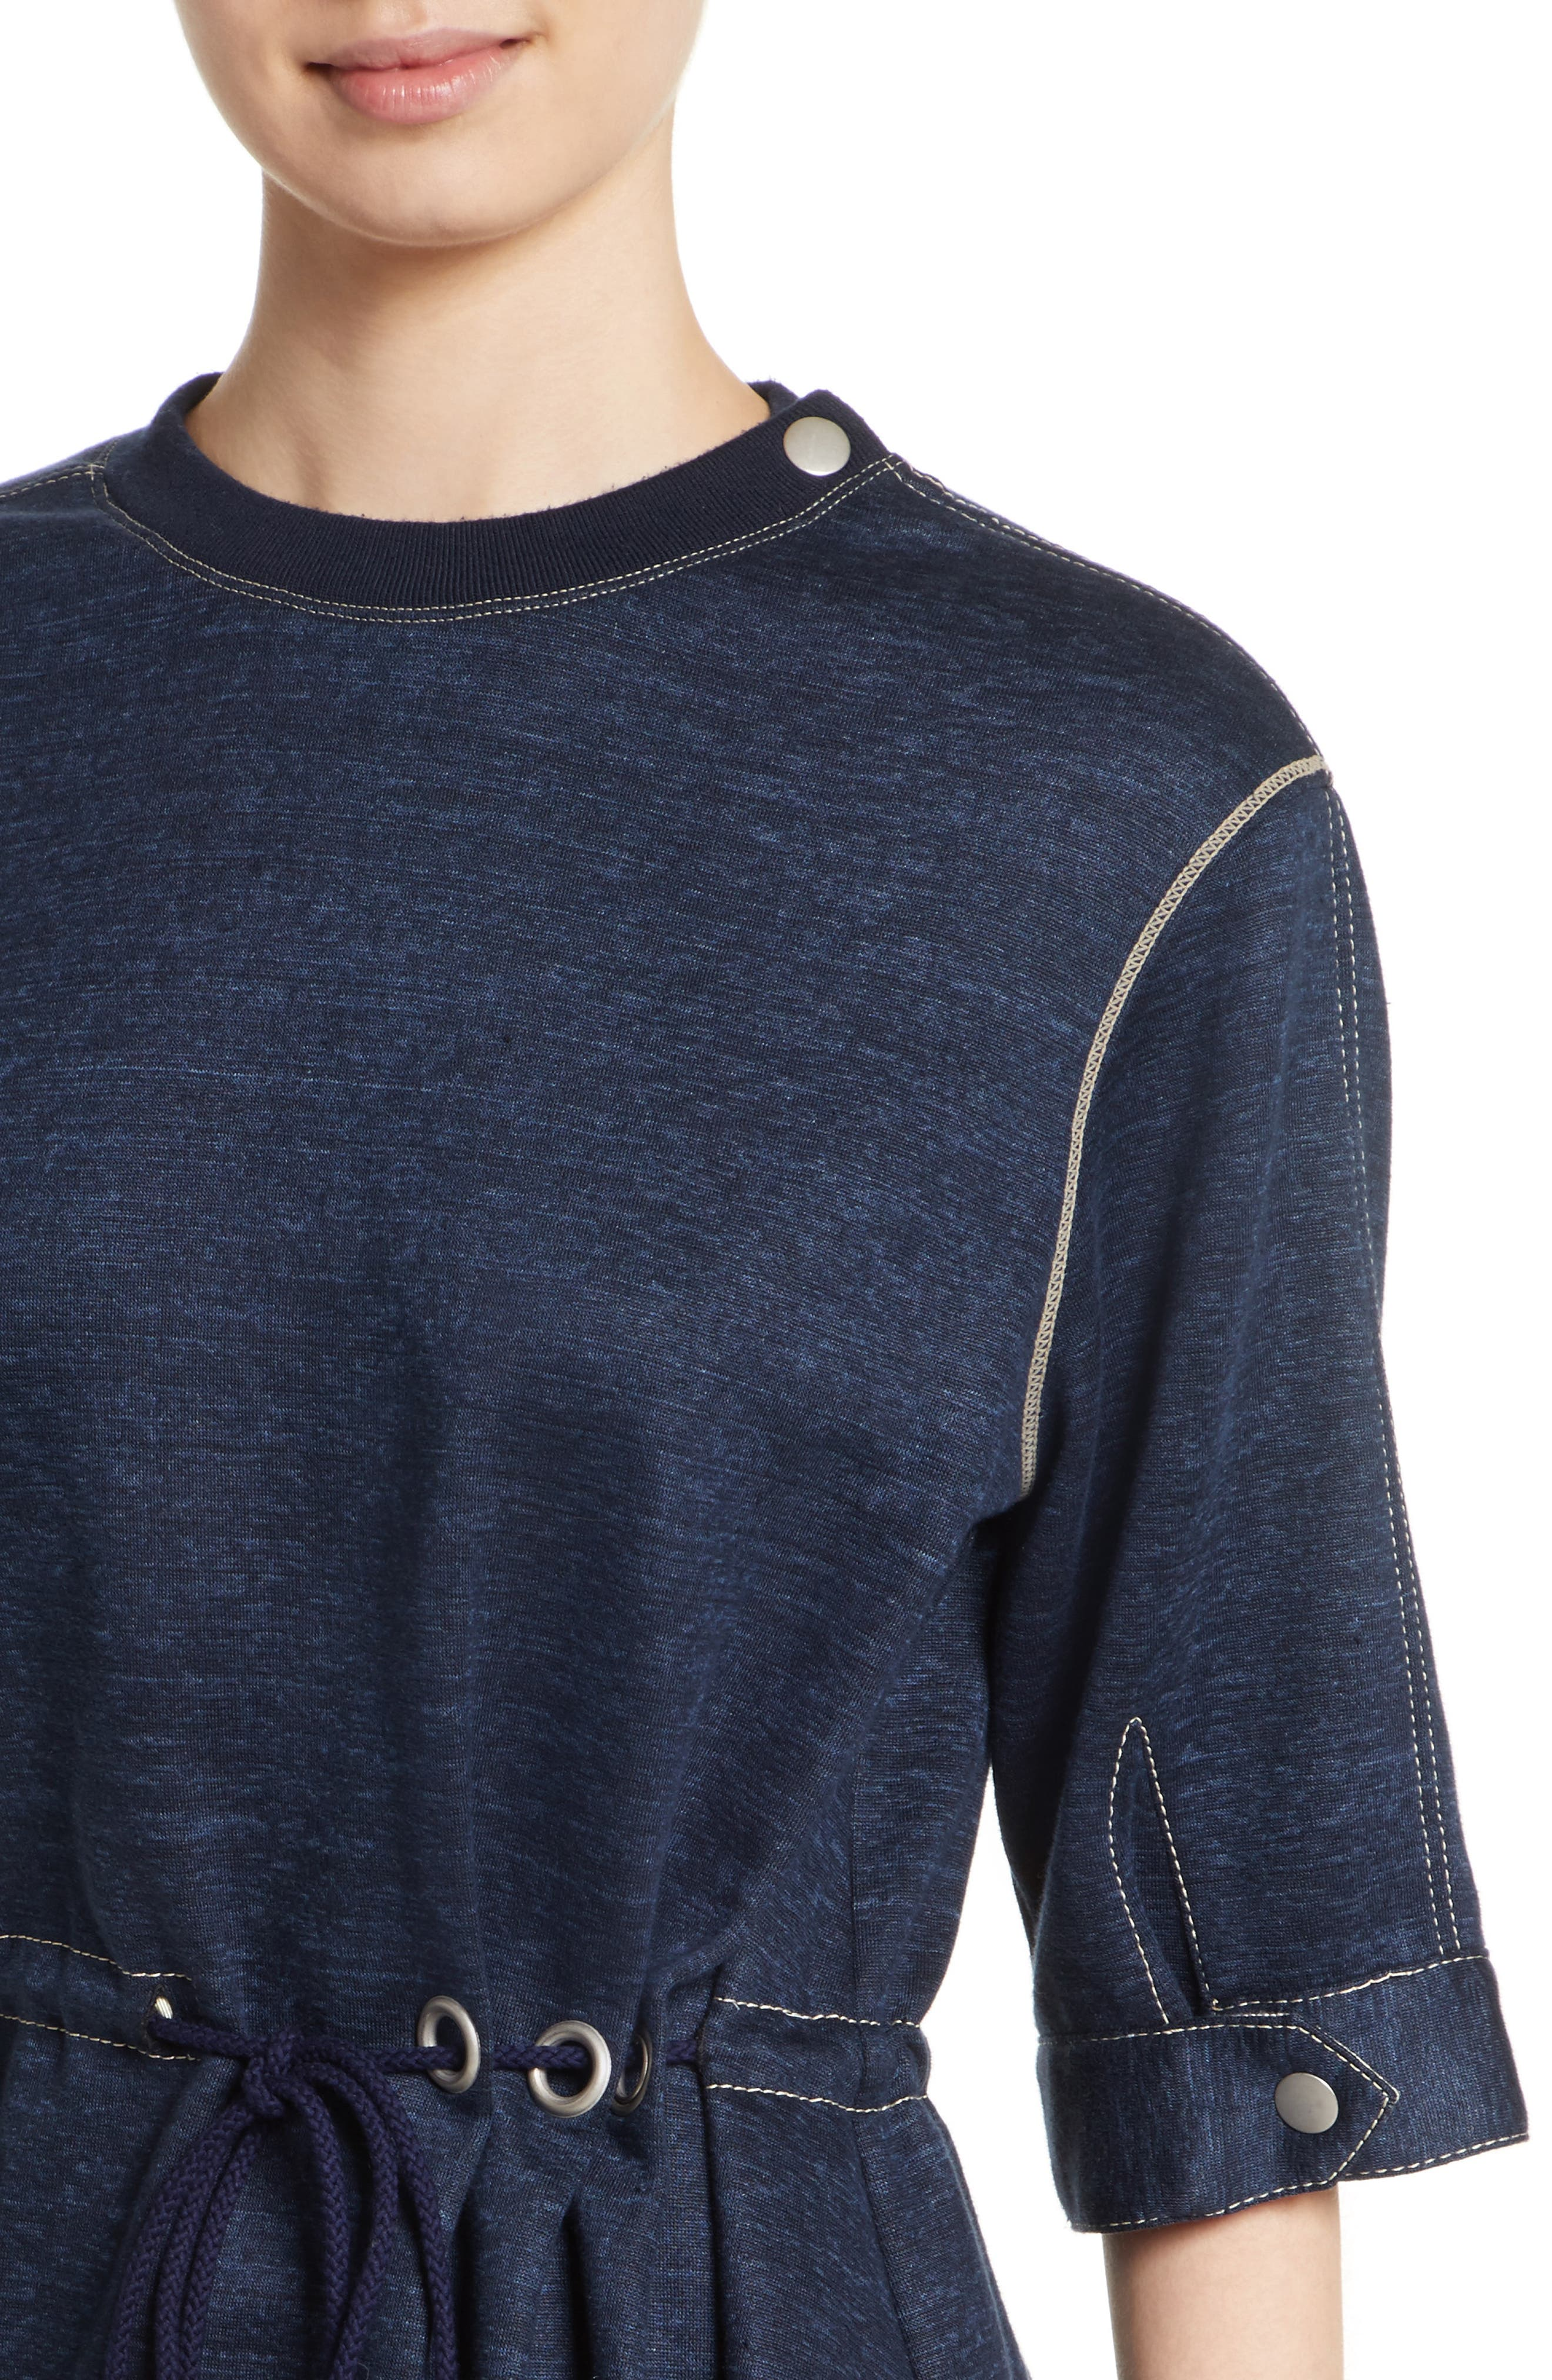 Alternate Image 4  - Colovos Drawstring Waist Sweatshirt Top